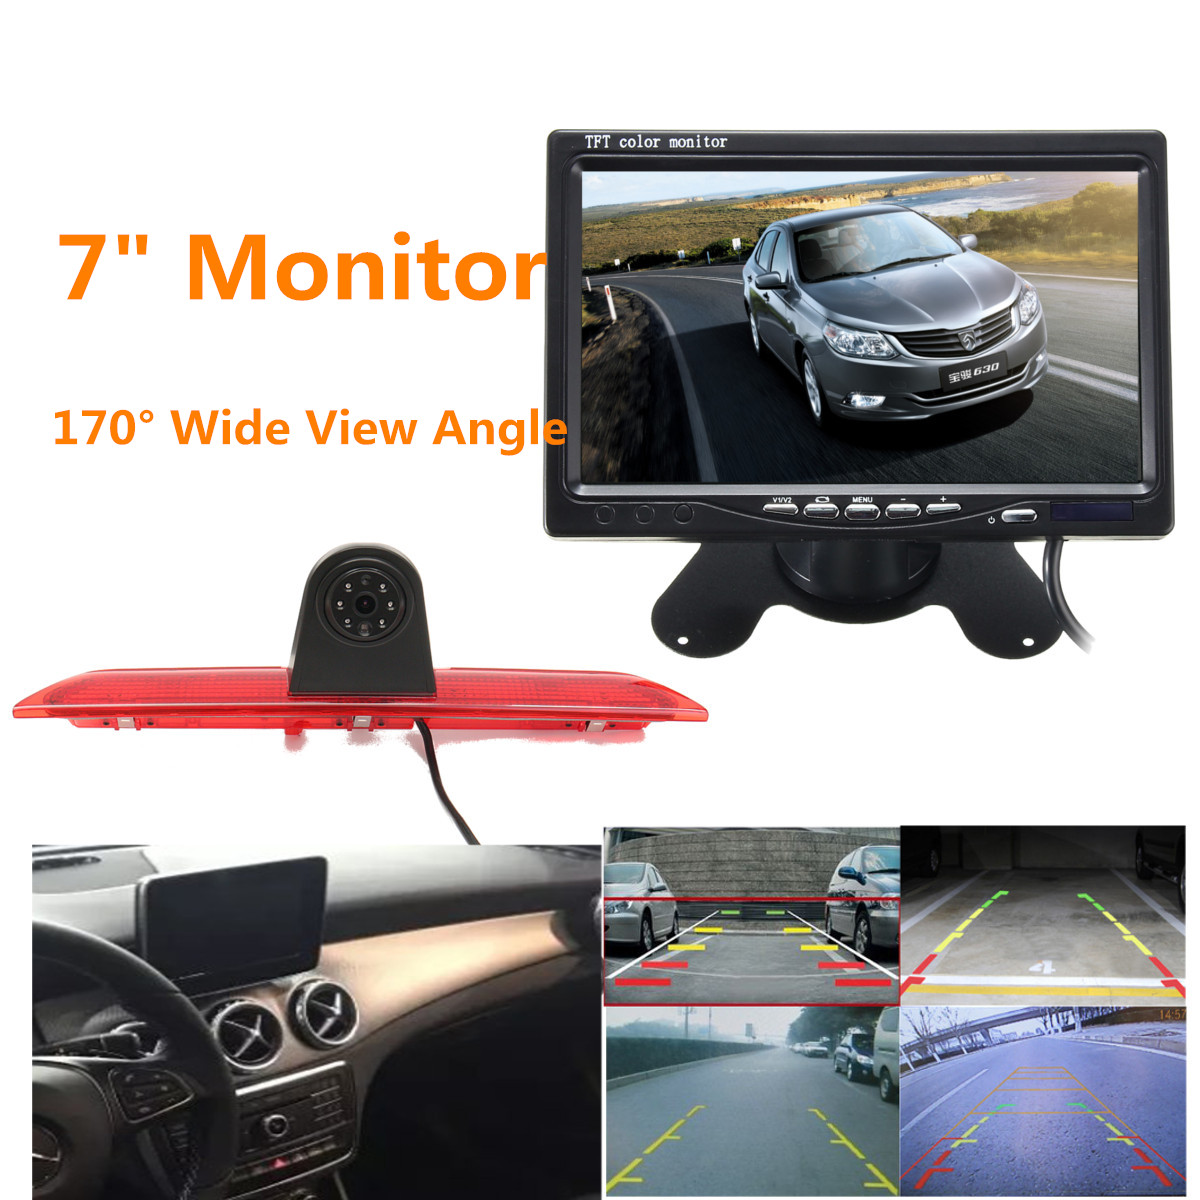 Car Brake Light Rear View Camera For Ford Transit with 1/3 For Sony CCD IR Led light Night Vision Waterproof With 7 Monitor 700tvl hd metal dual rear view camera 1 3 ccd sony outdoor waterproof ir night vision for vehicle car dvr surveillance security